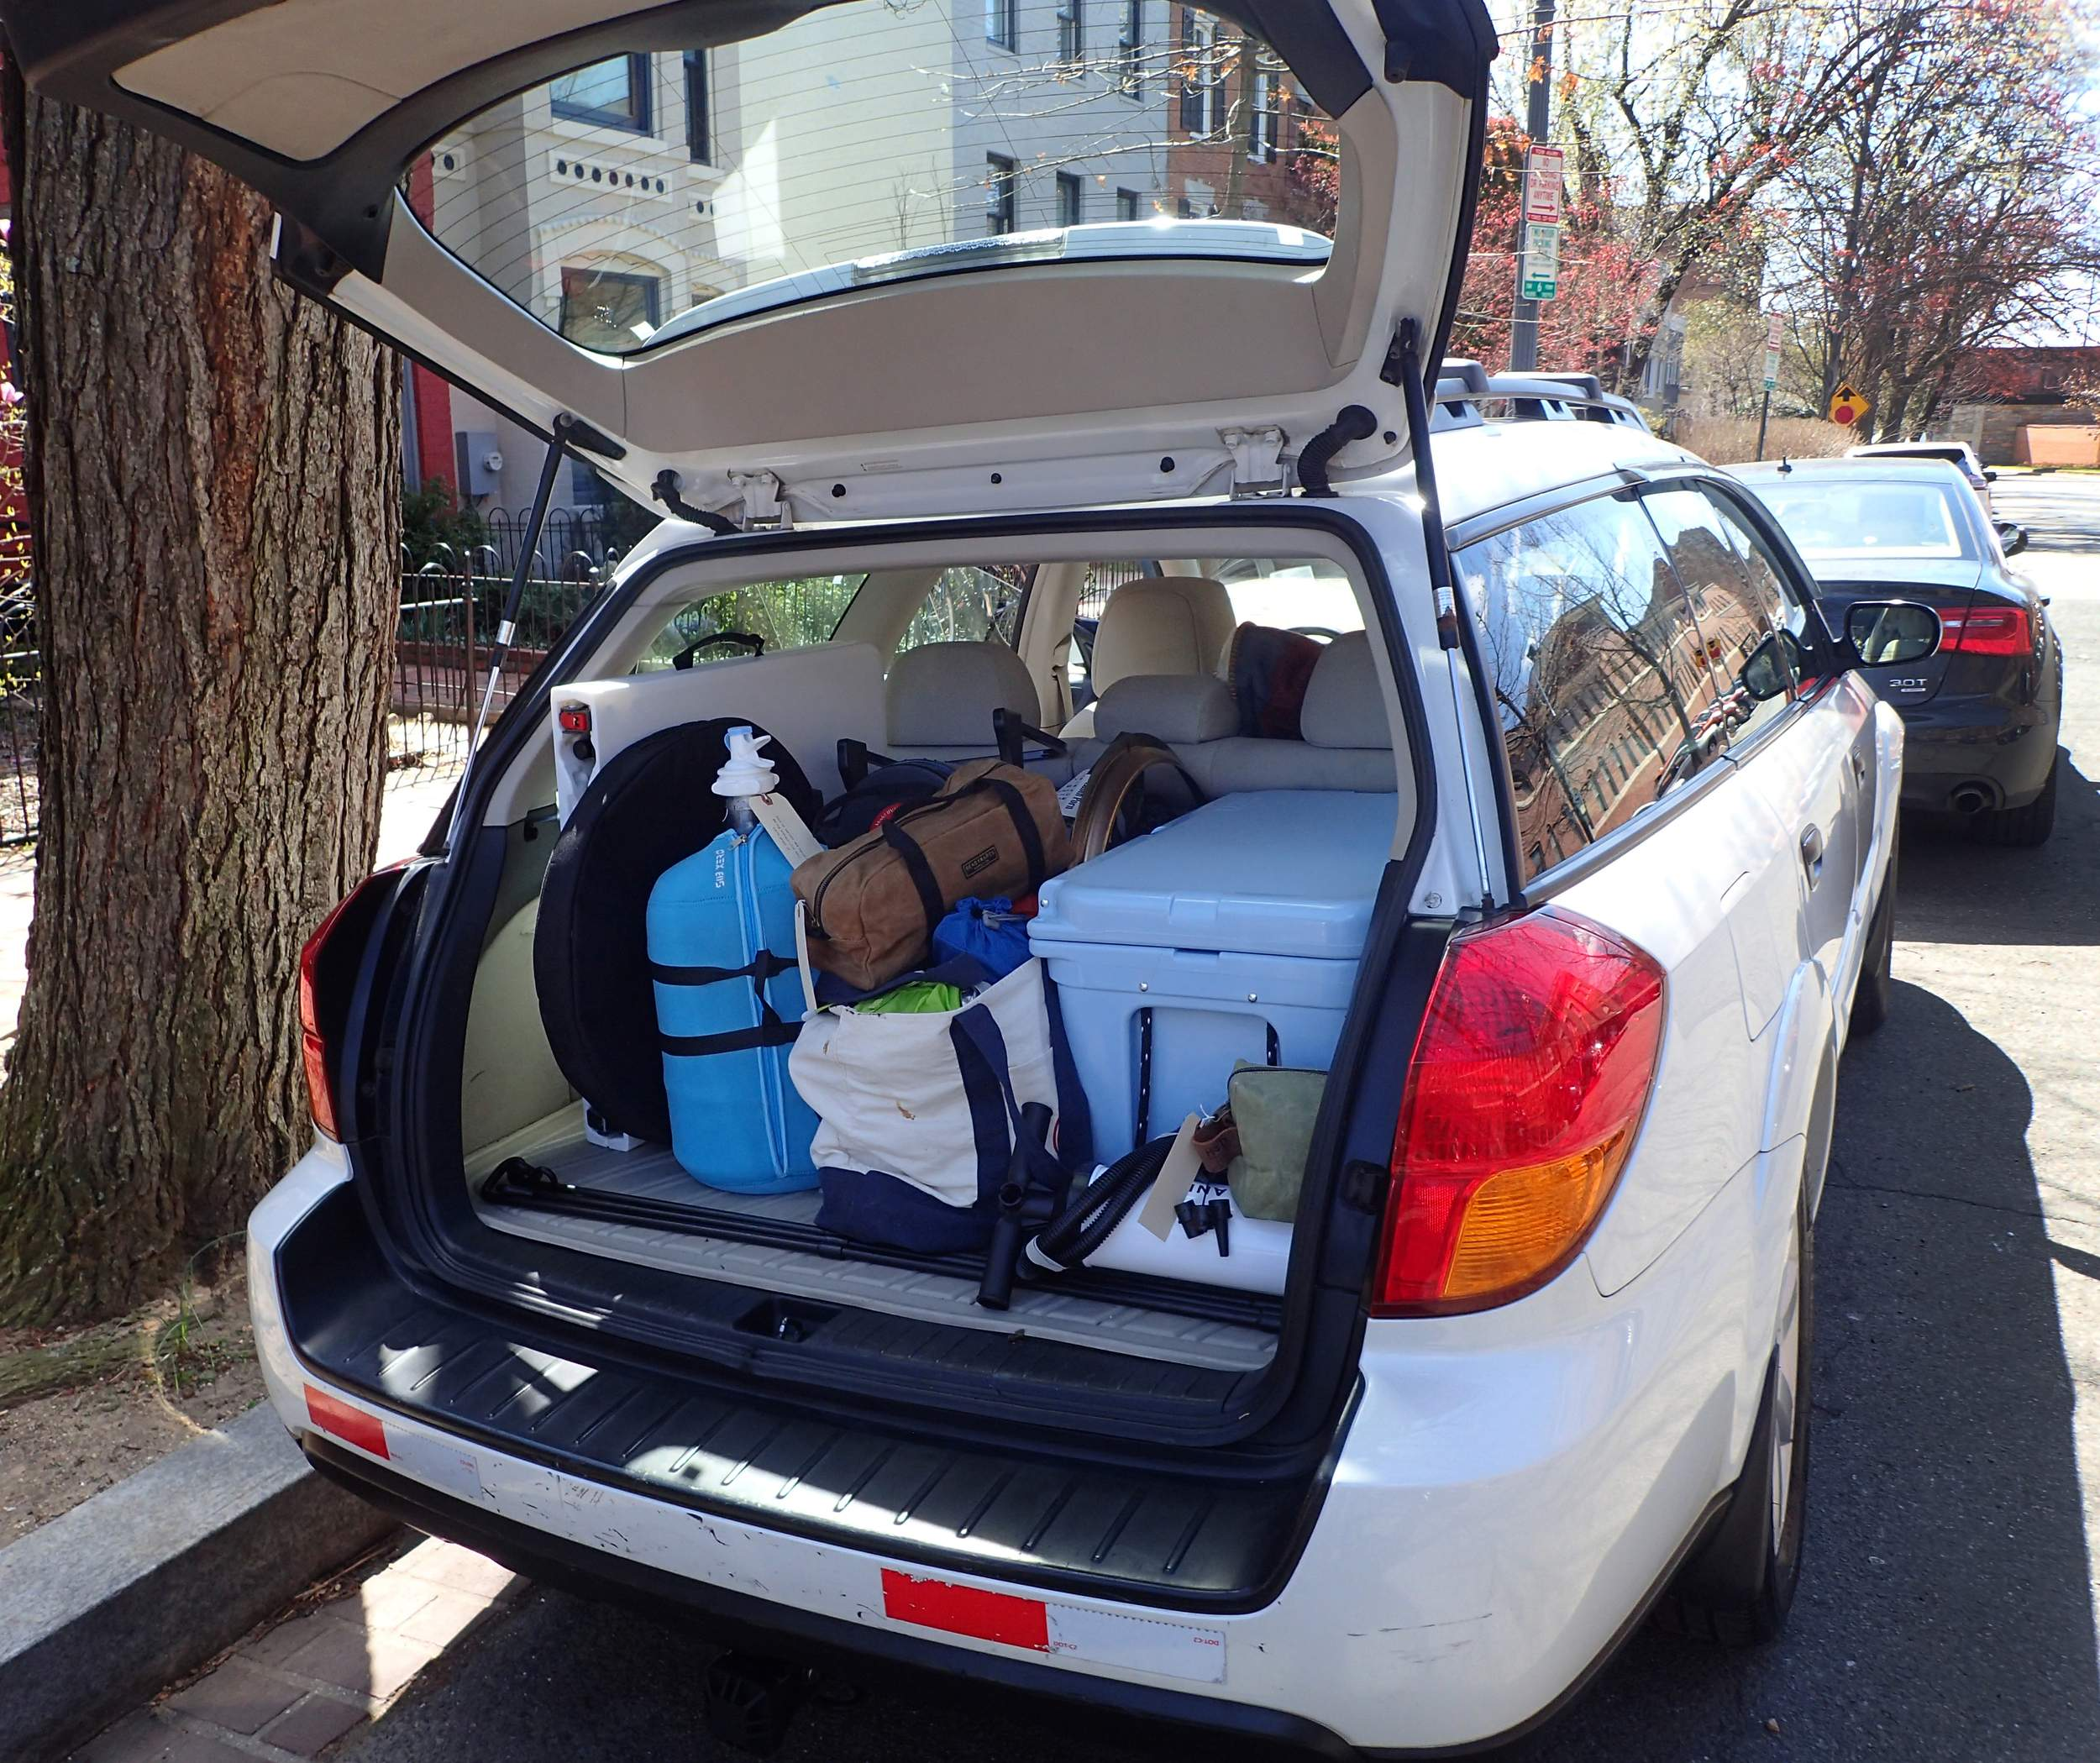 Trailhead Outdoor Journey Cooperative Provides Customers With A Subaru Filled Camping Gear